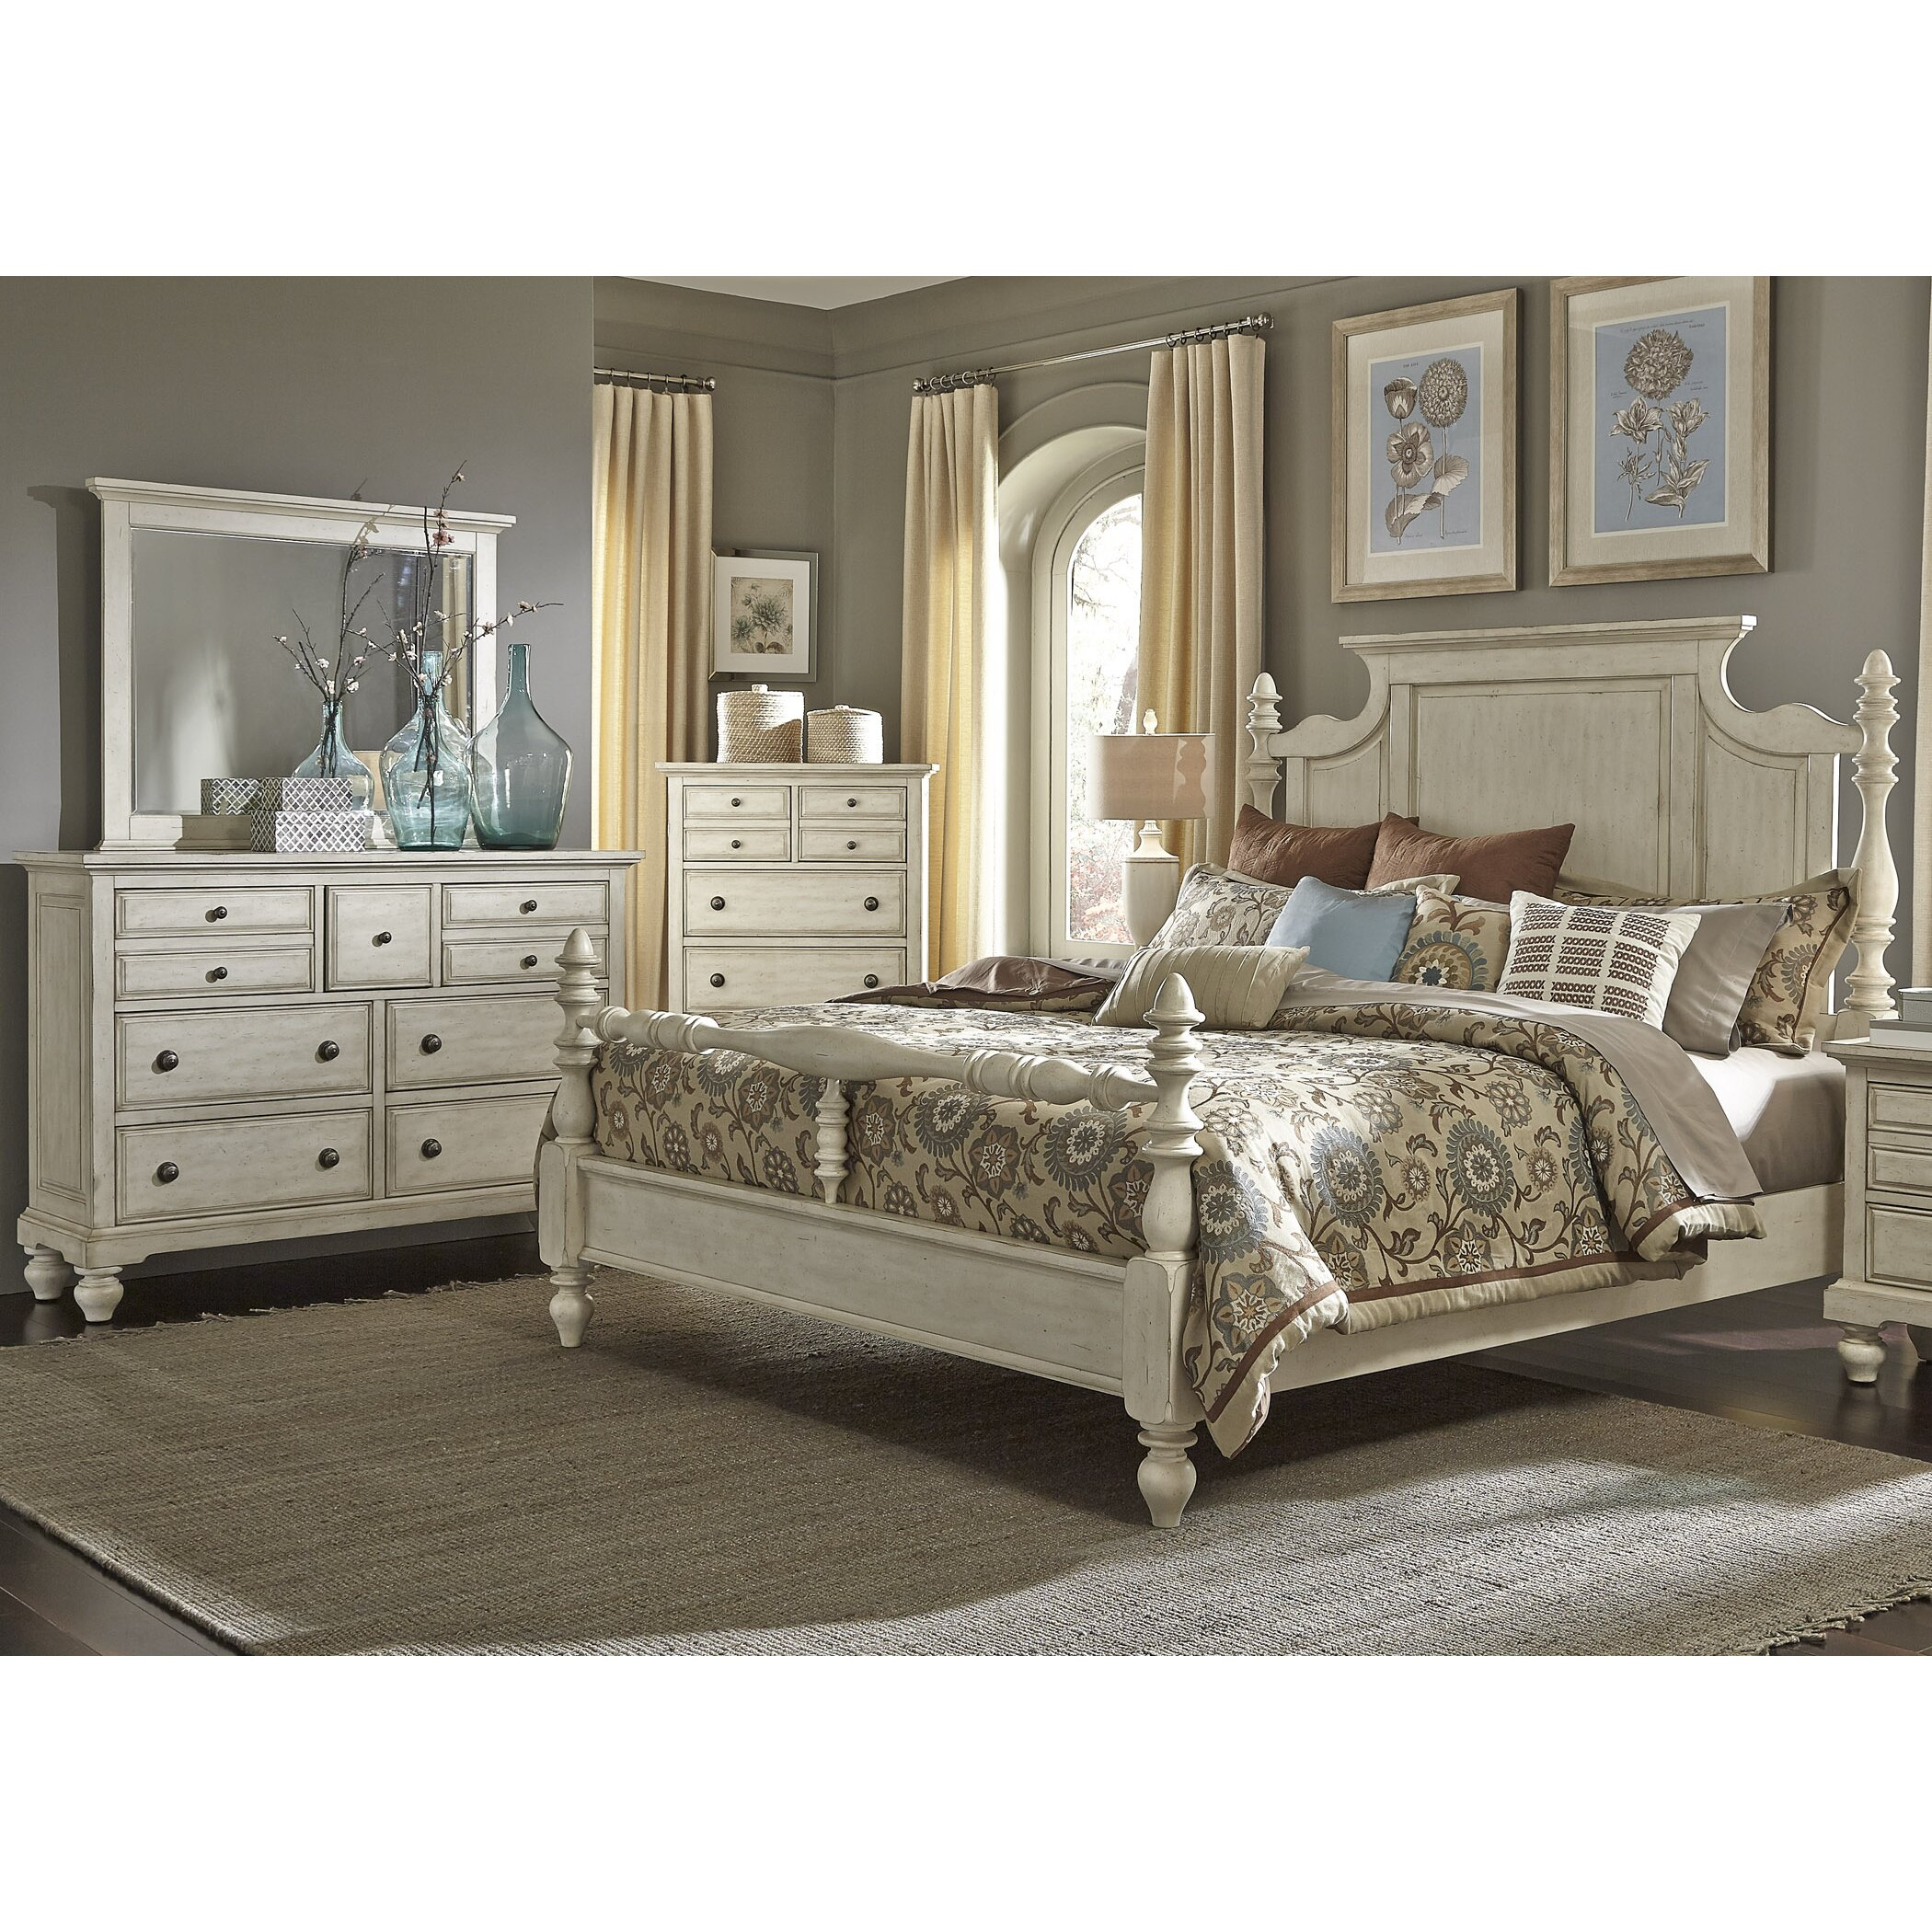 Lexington Bedroom Furniture Discontinued Four Poster Bedroom Sets Youll Love Wayfair